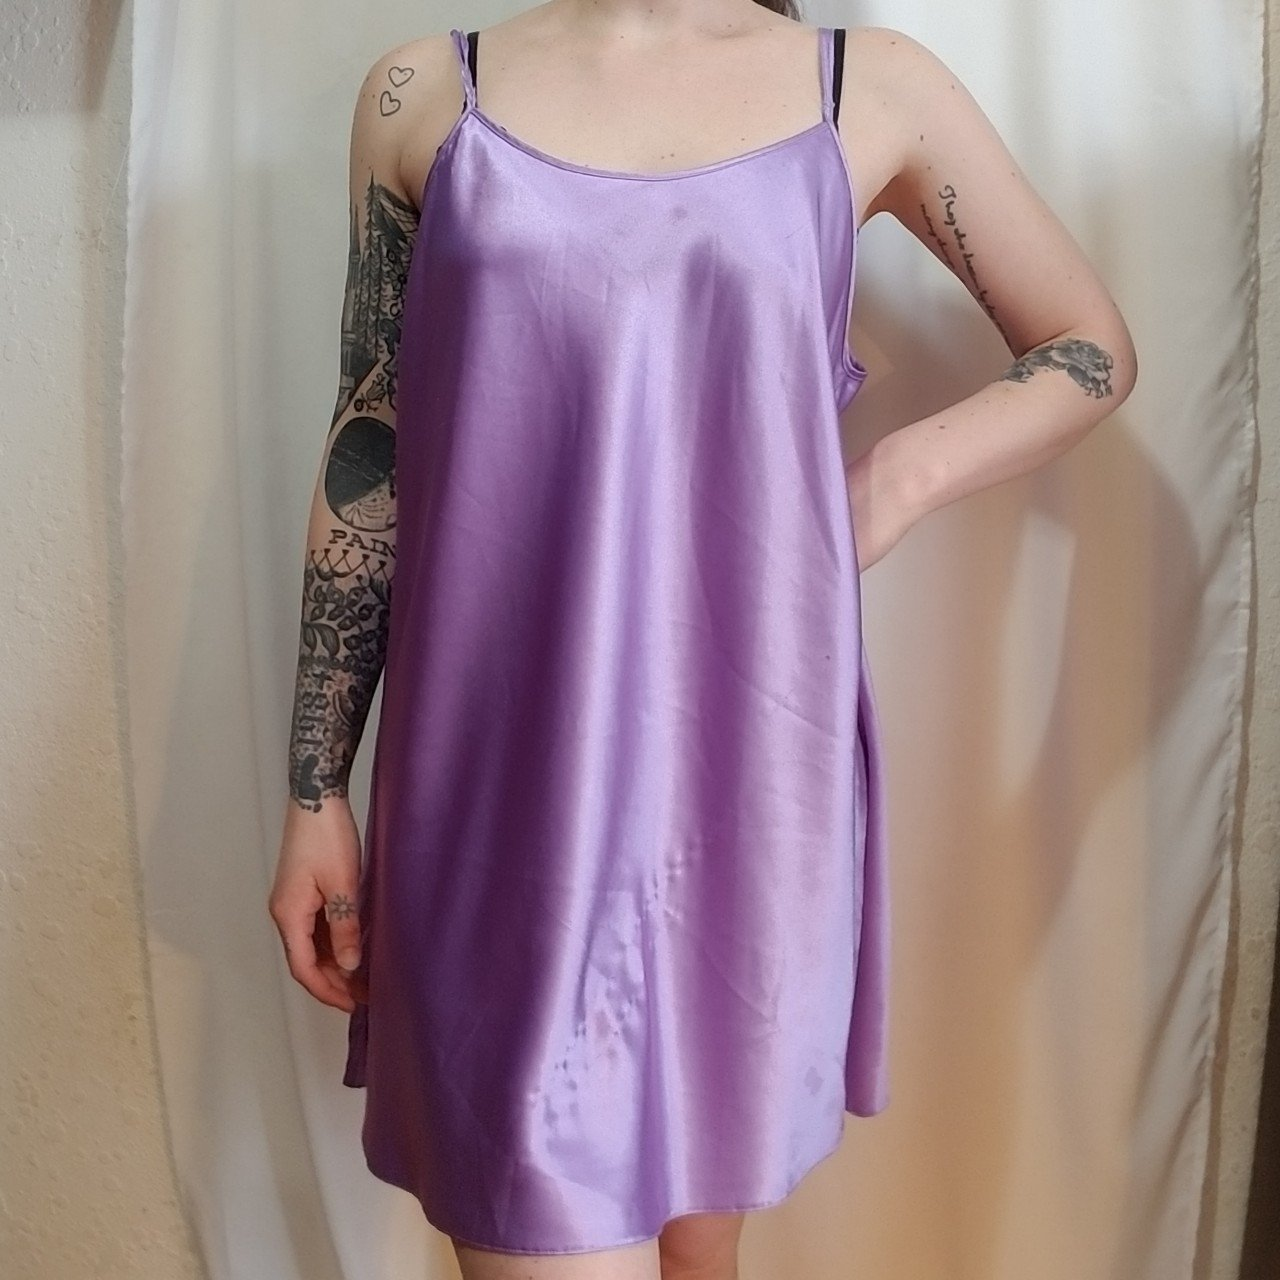 🔮lavender fields nightie🔮 really silky nightgown 2a37a20bc